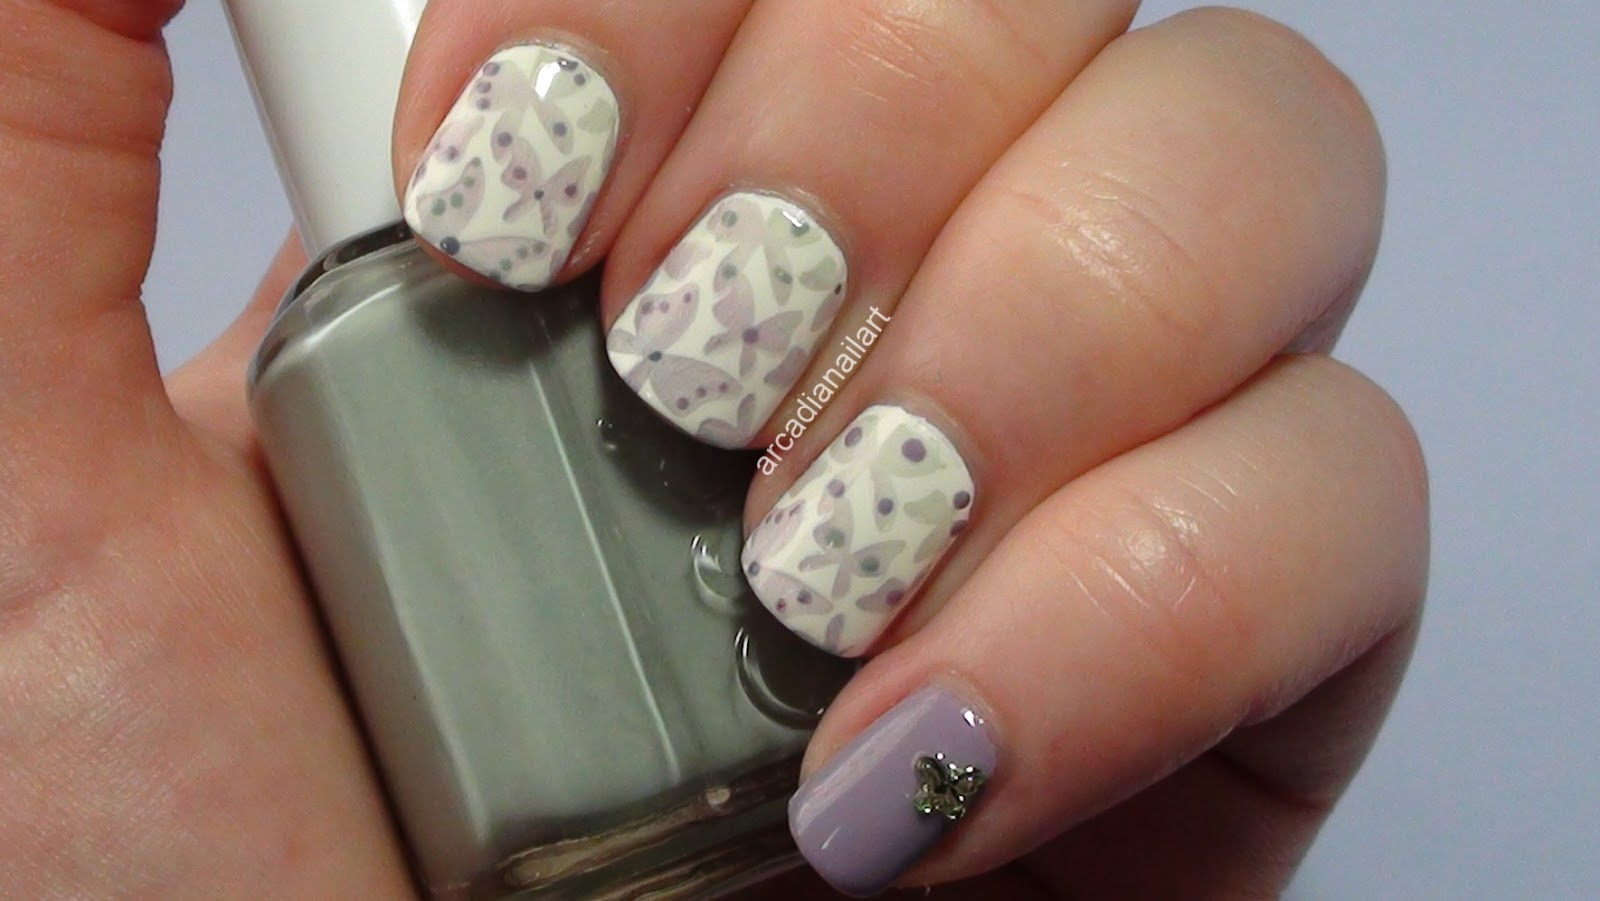 ArcadiaNailArt: Faded Butterflies Stamping Nail Art Tutorial